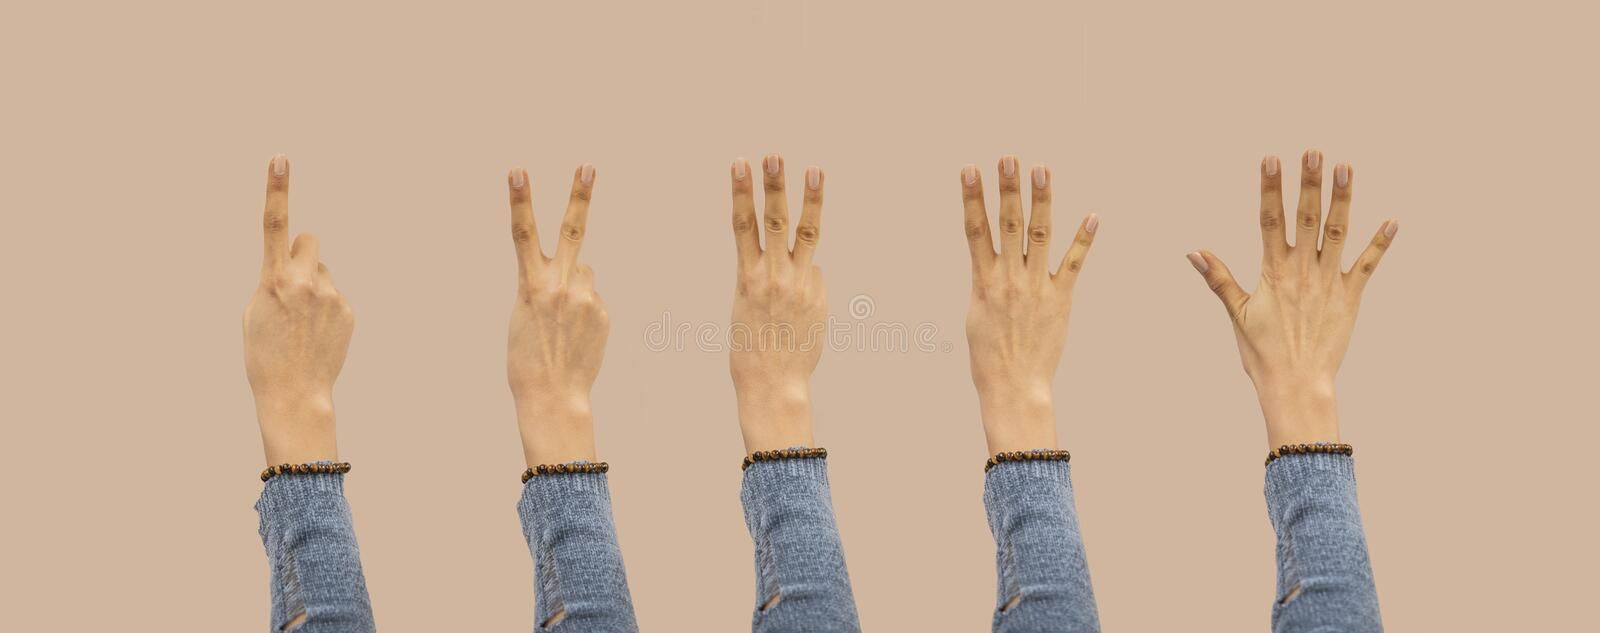 Cute girl showing one to five fingers count signs isolated on background with Clipping path included. Communication gestures stock images